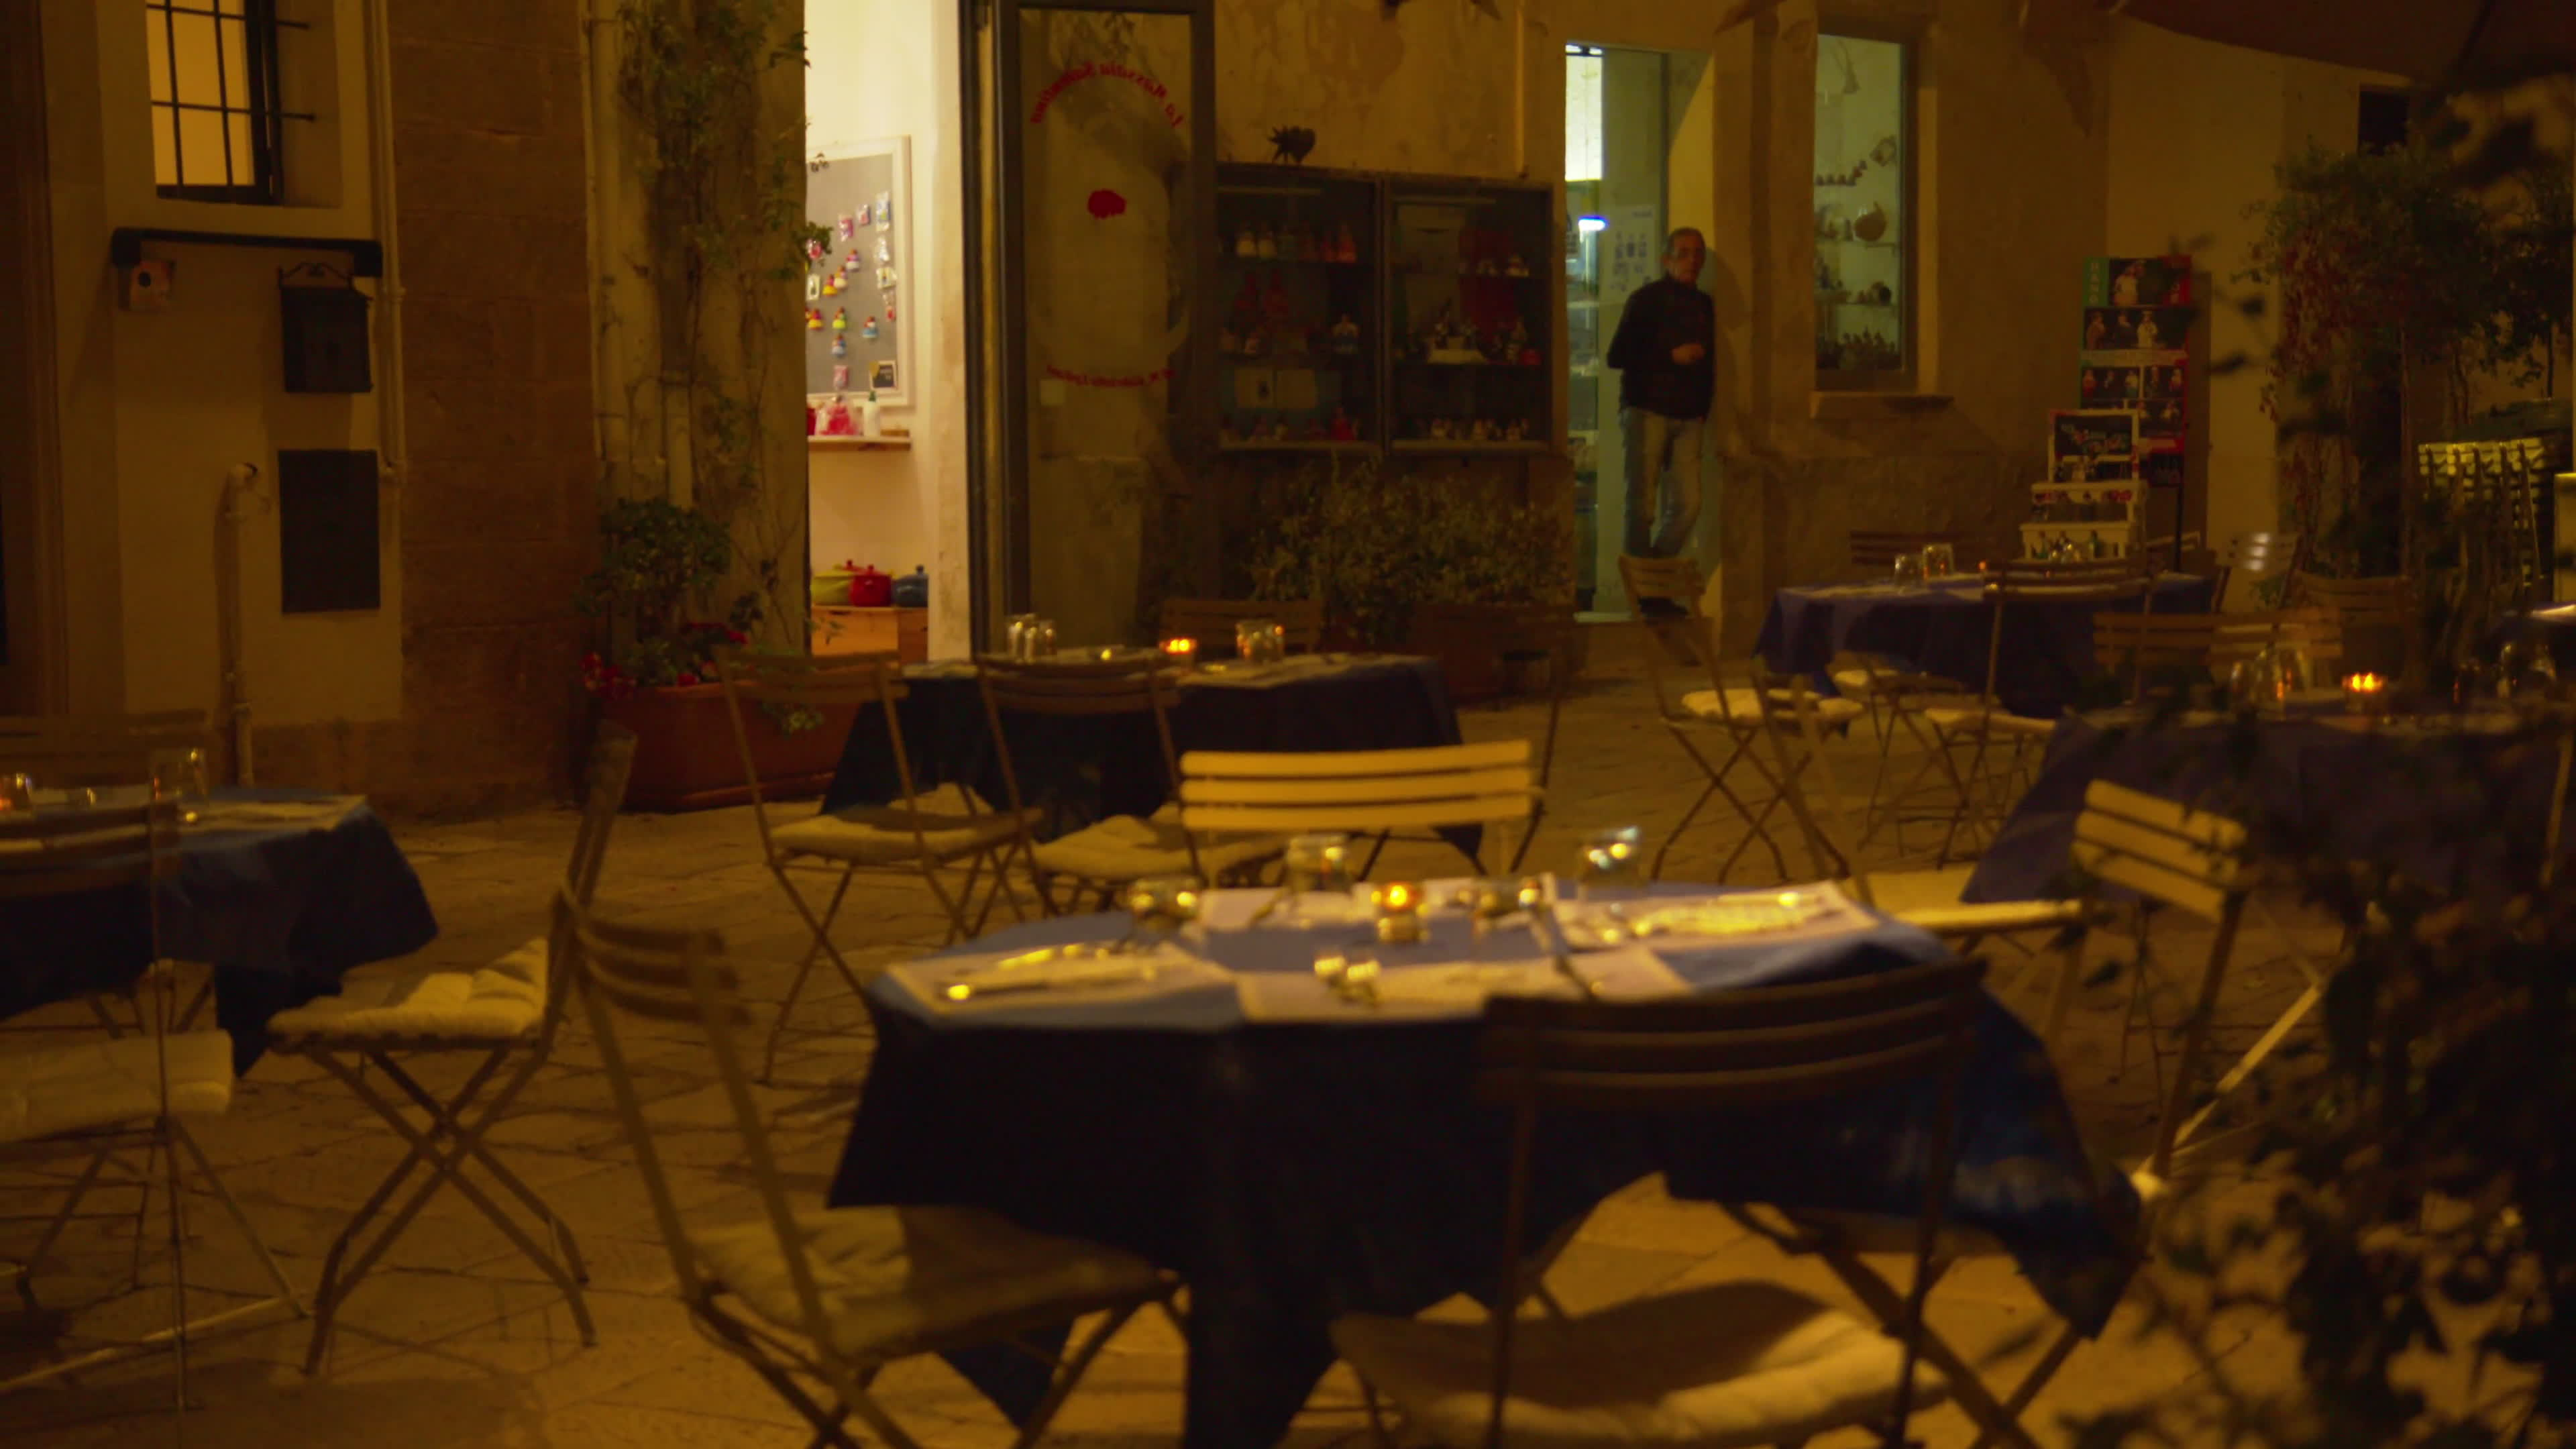 Daily Life In The Baroque City of Lecce Amid the COVID-19 pandemic